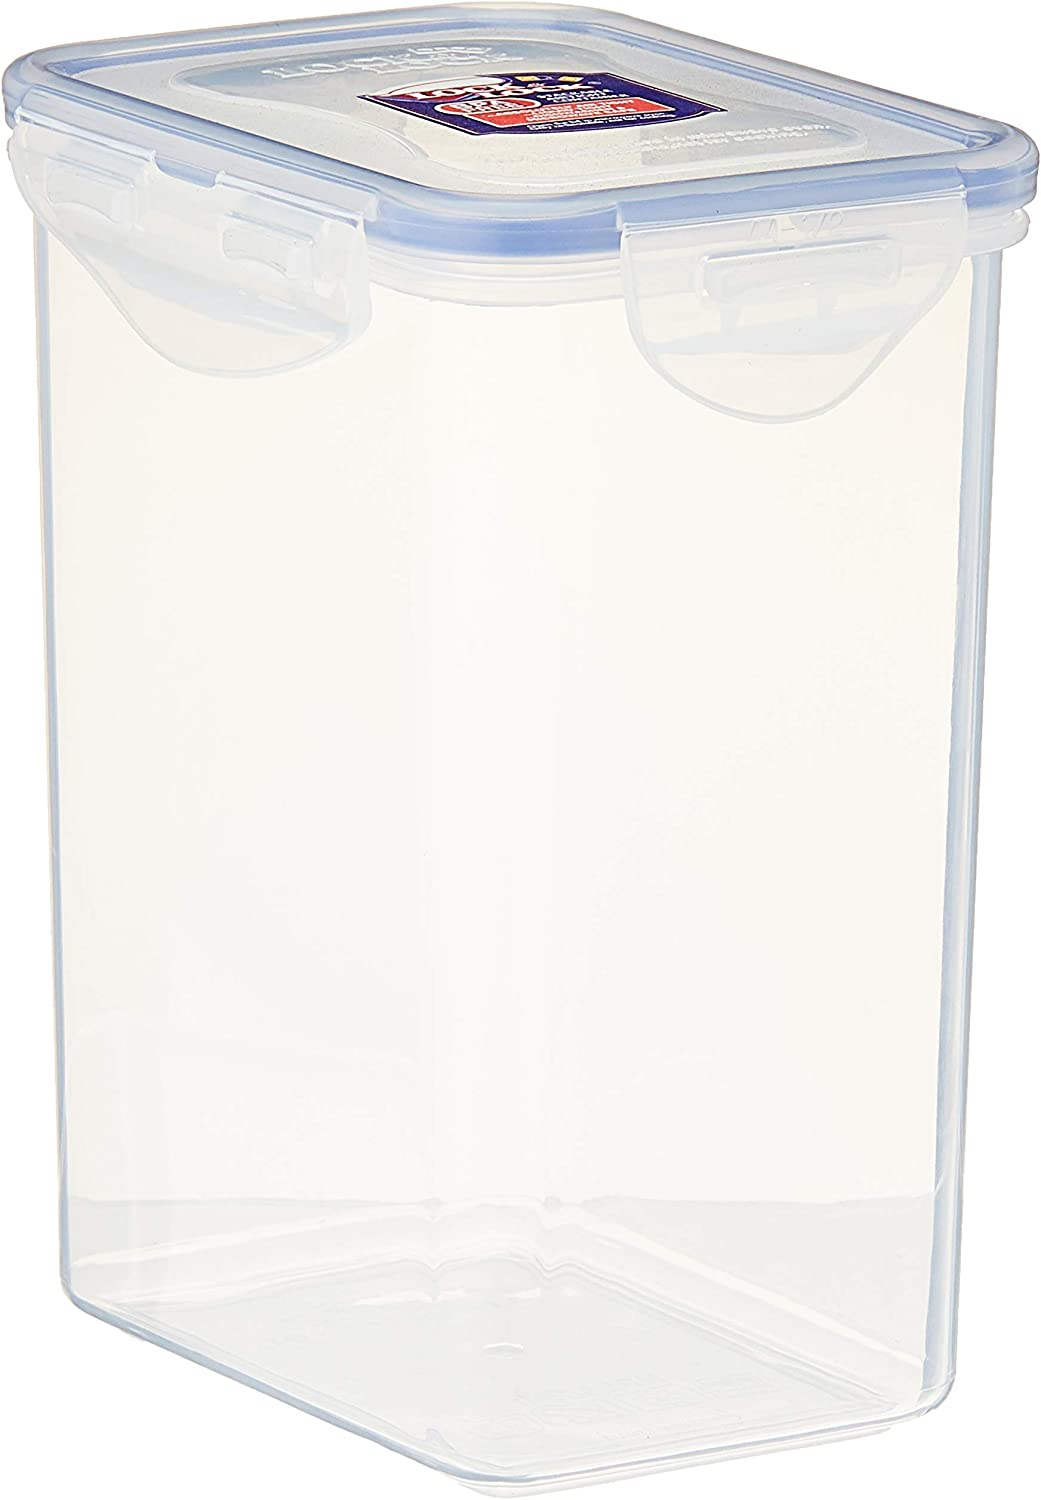 LOCK & LOCK, No BPA, Water Tight Lid, Food Container, , 5.1-cup, 41-oz